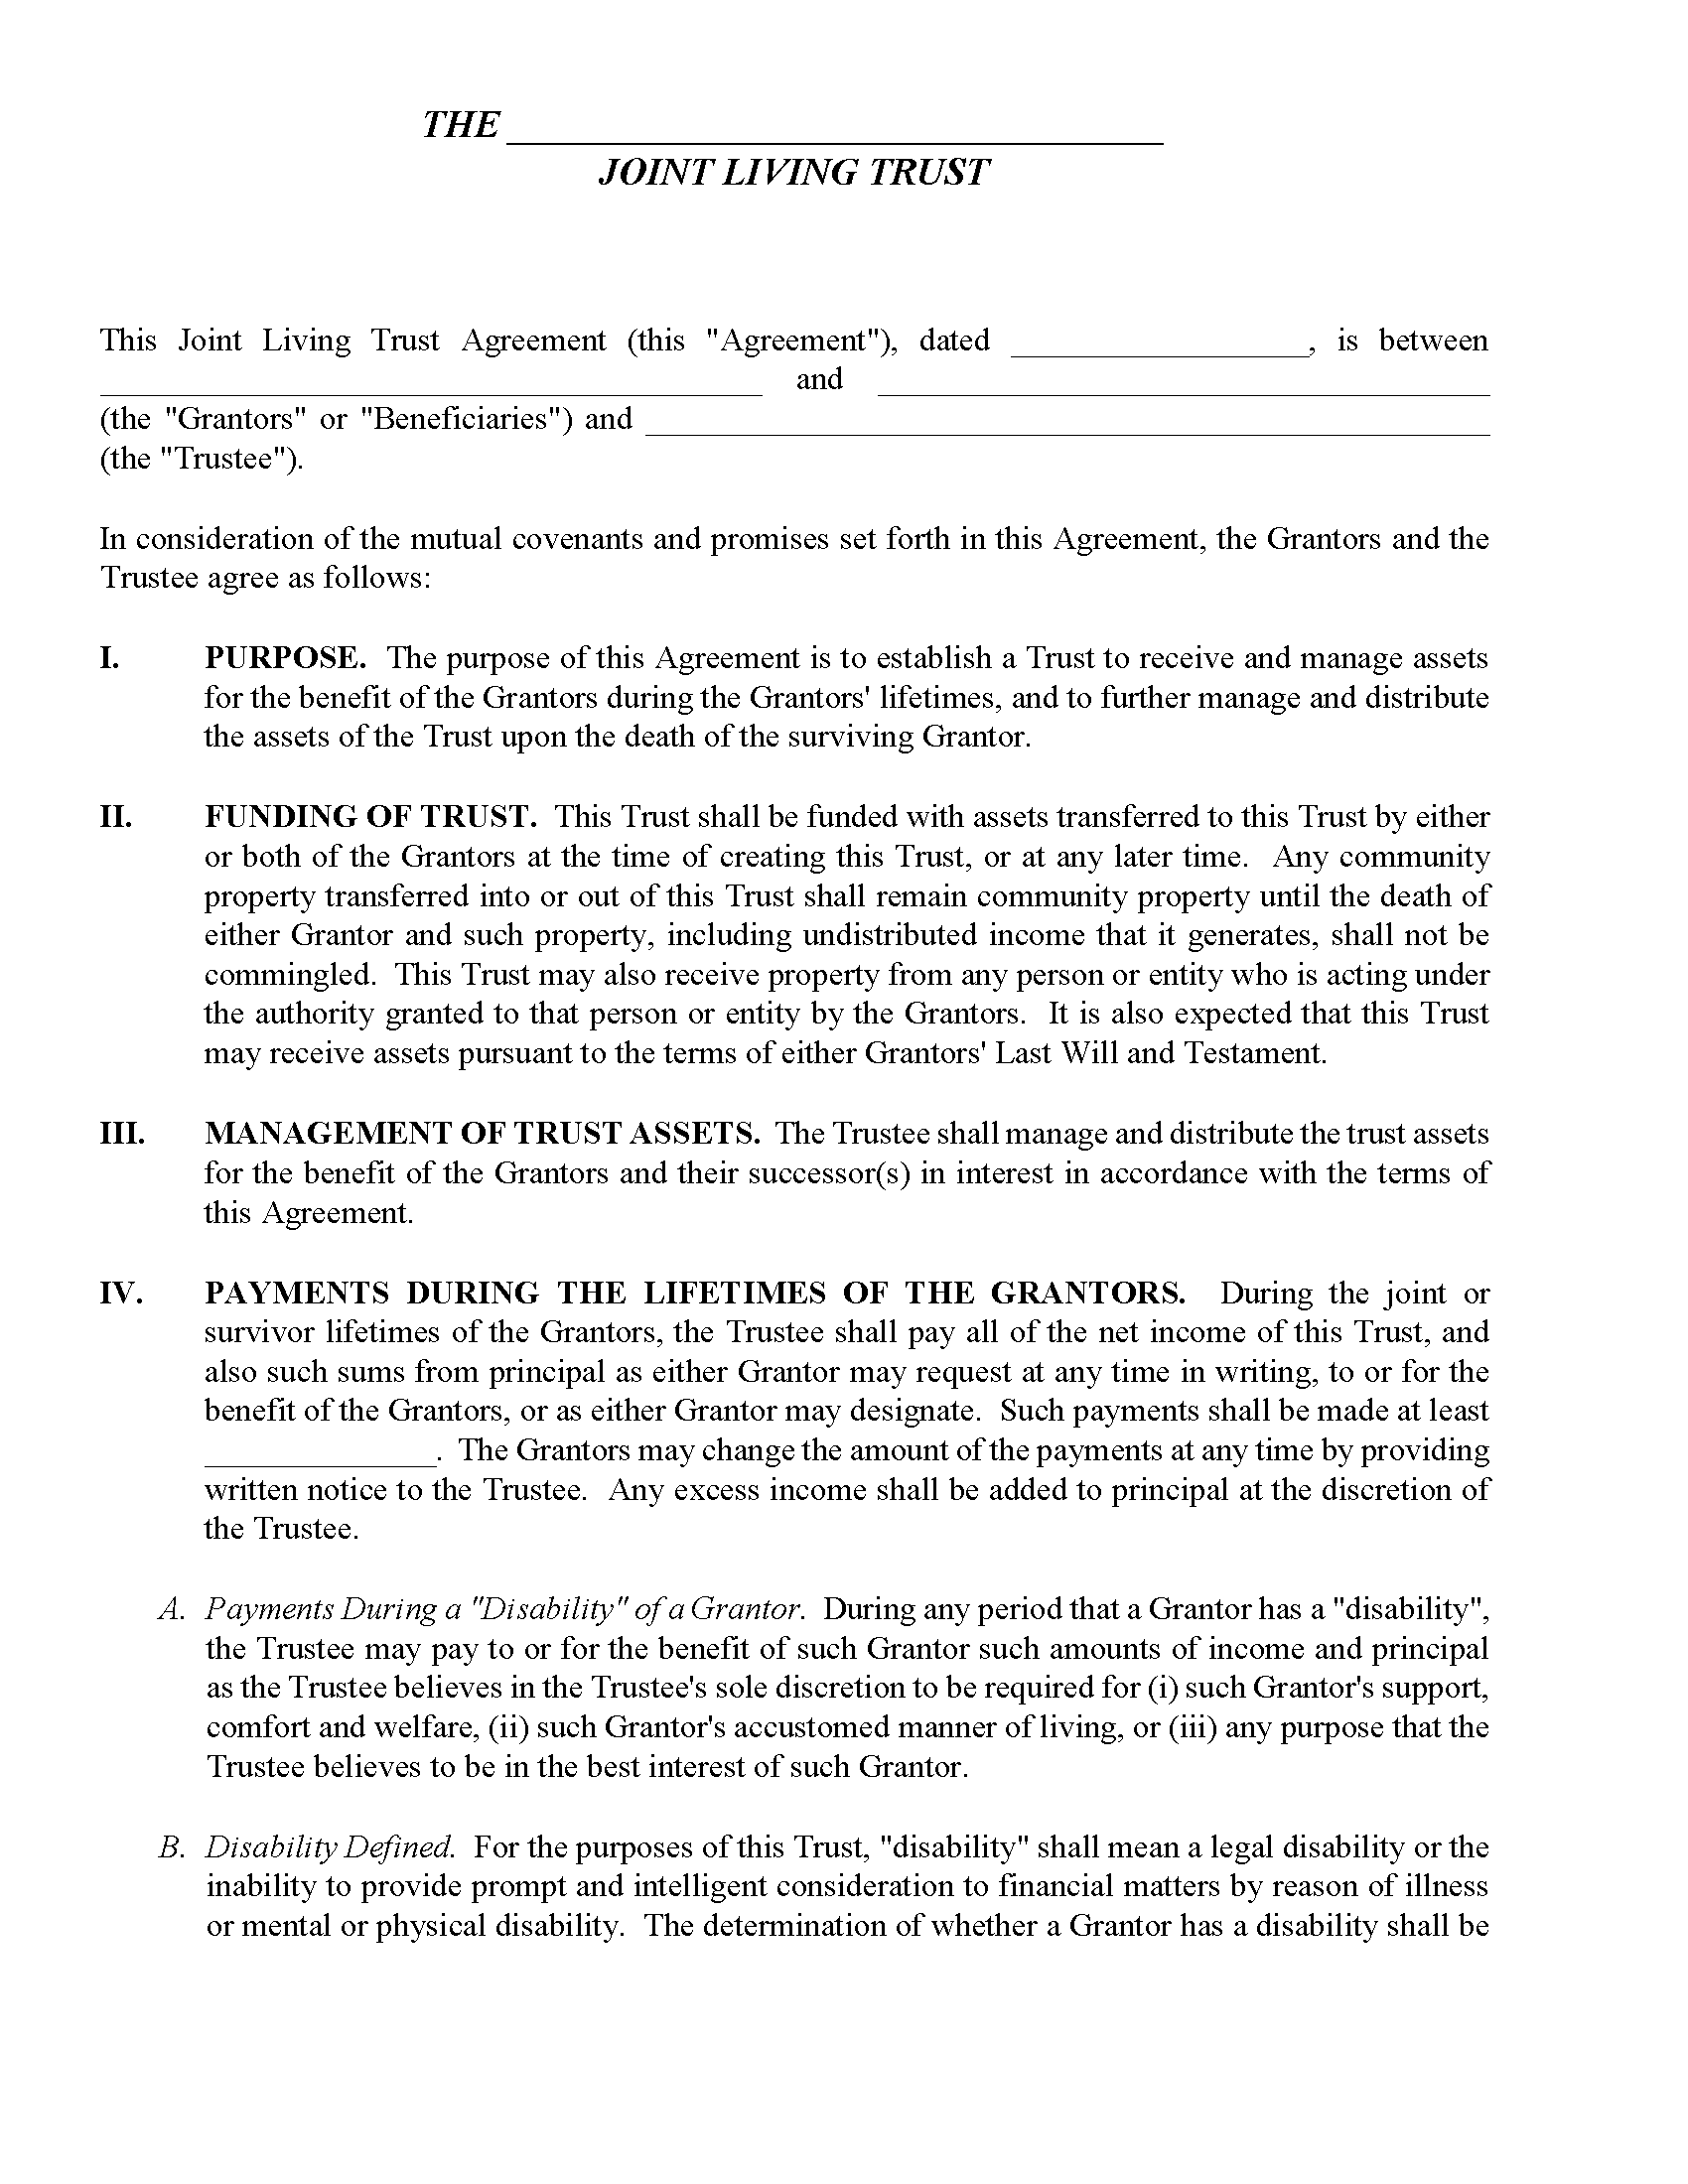 Missouri Joint Living Trust Form